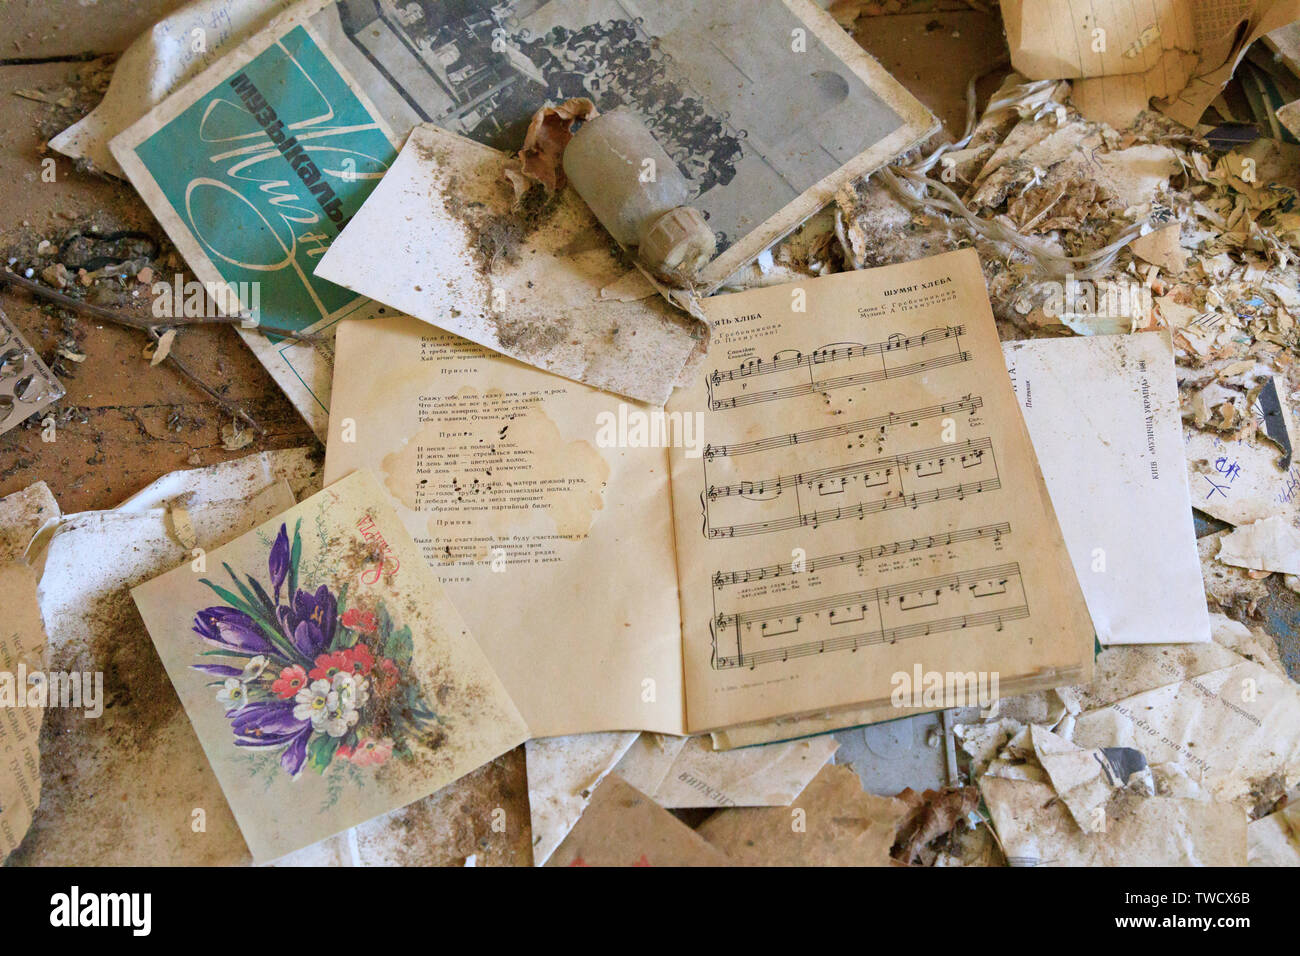 Eastern Europe, Ukraine, Pripyat, Chernobyl.  Music book and greeting card on floor. April 09, 2018. - Stock Image